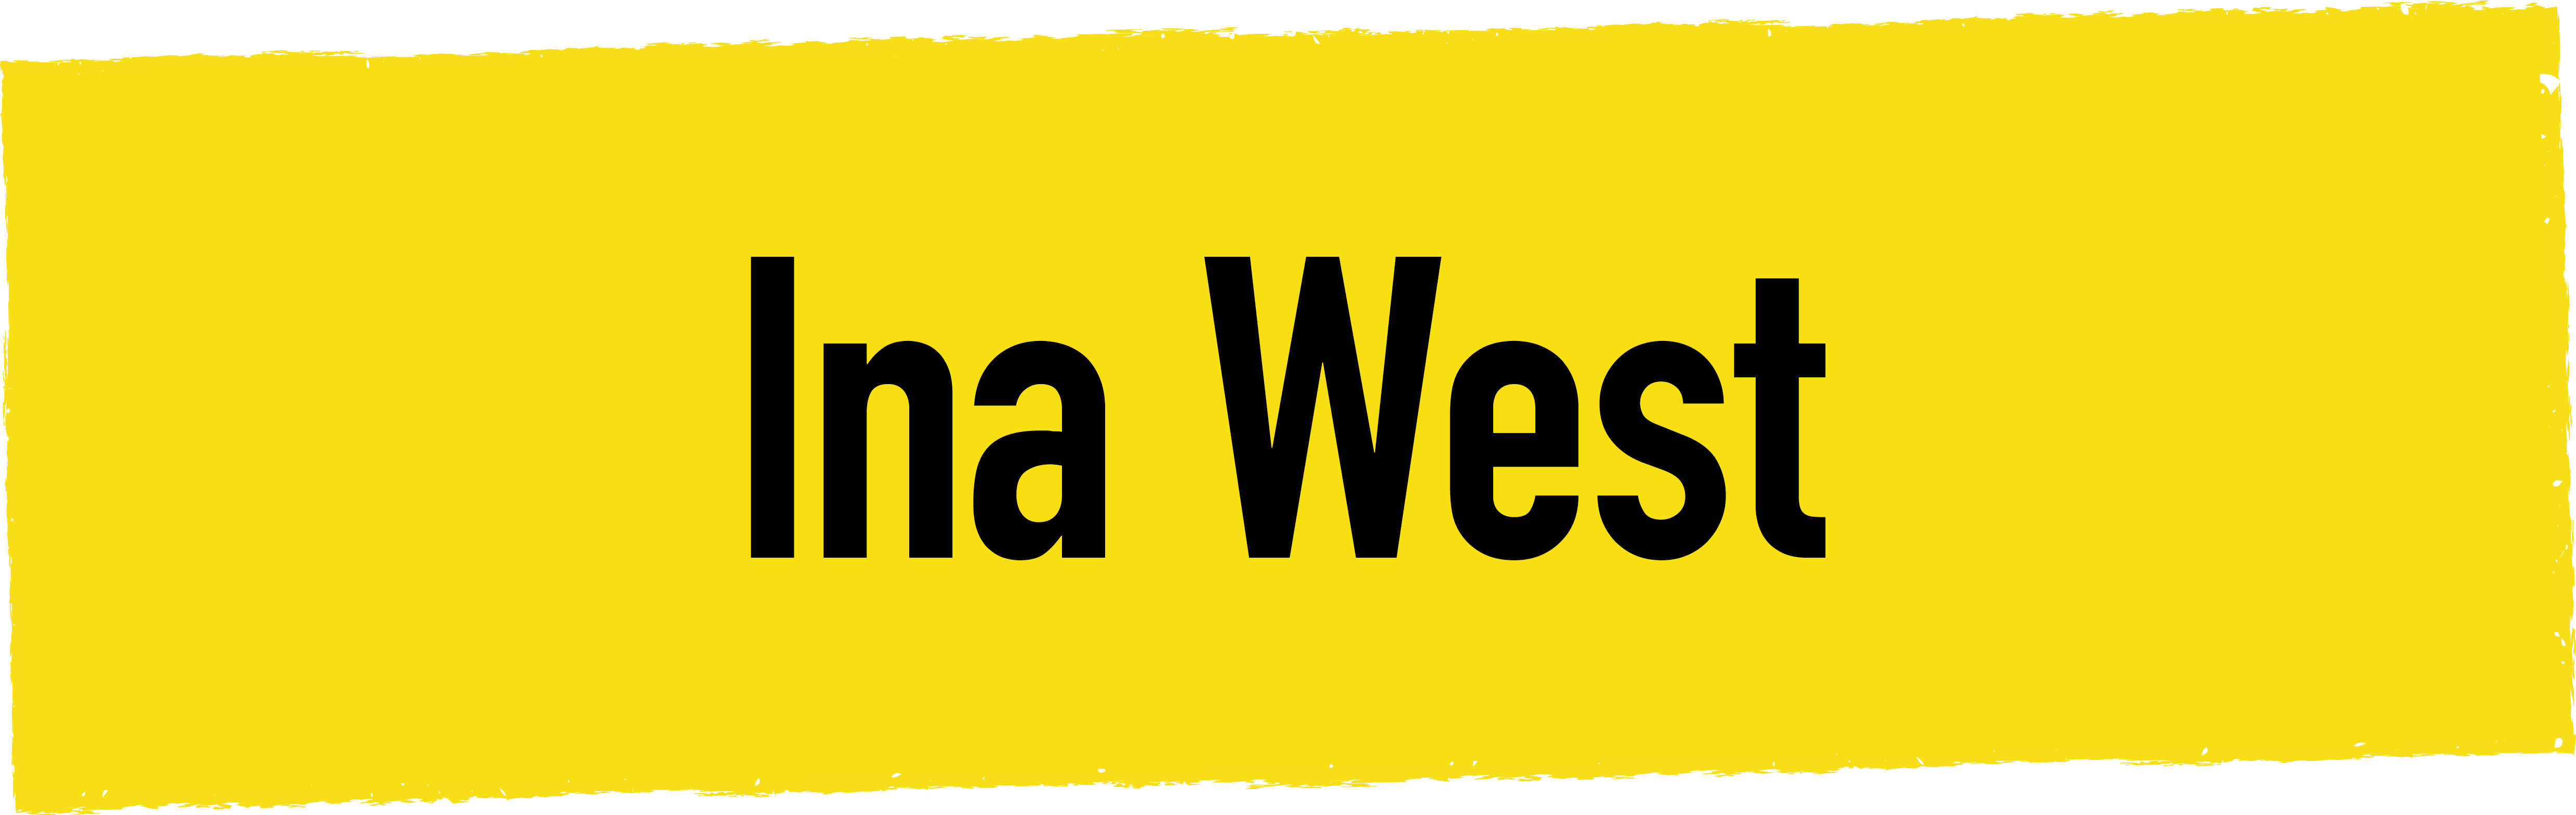 INA WEST